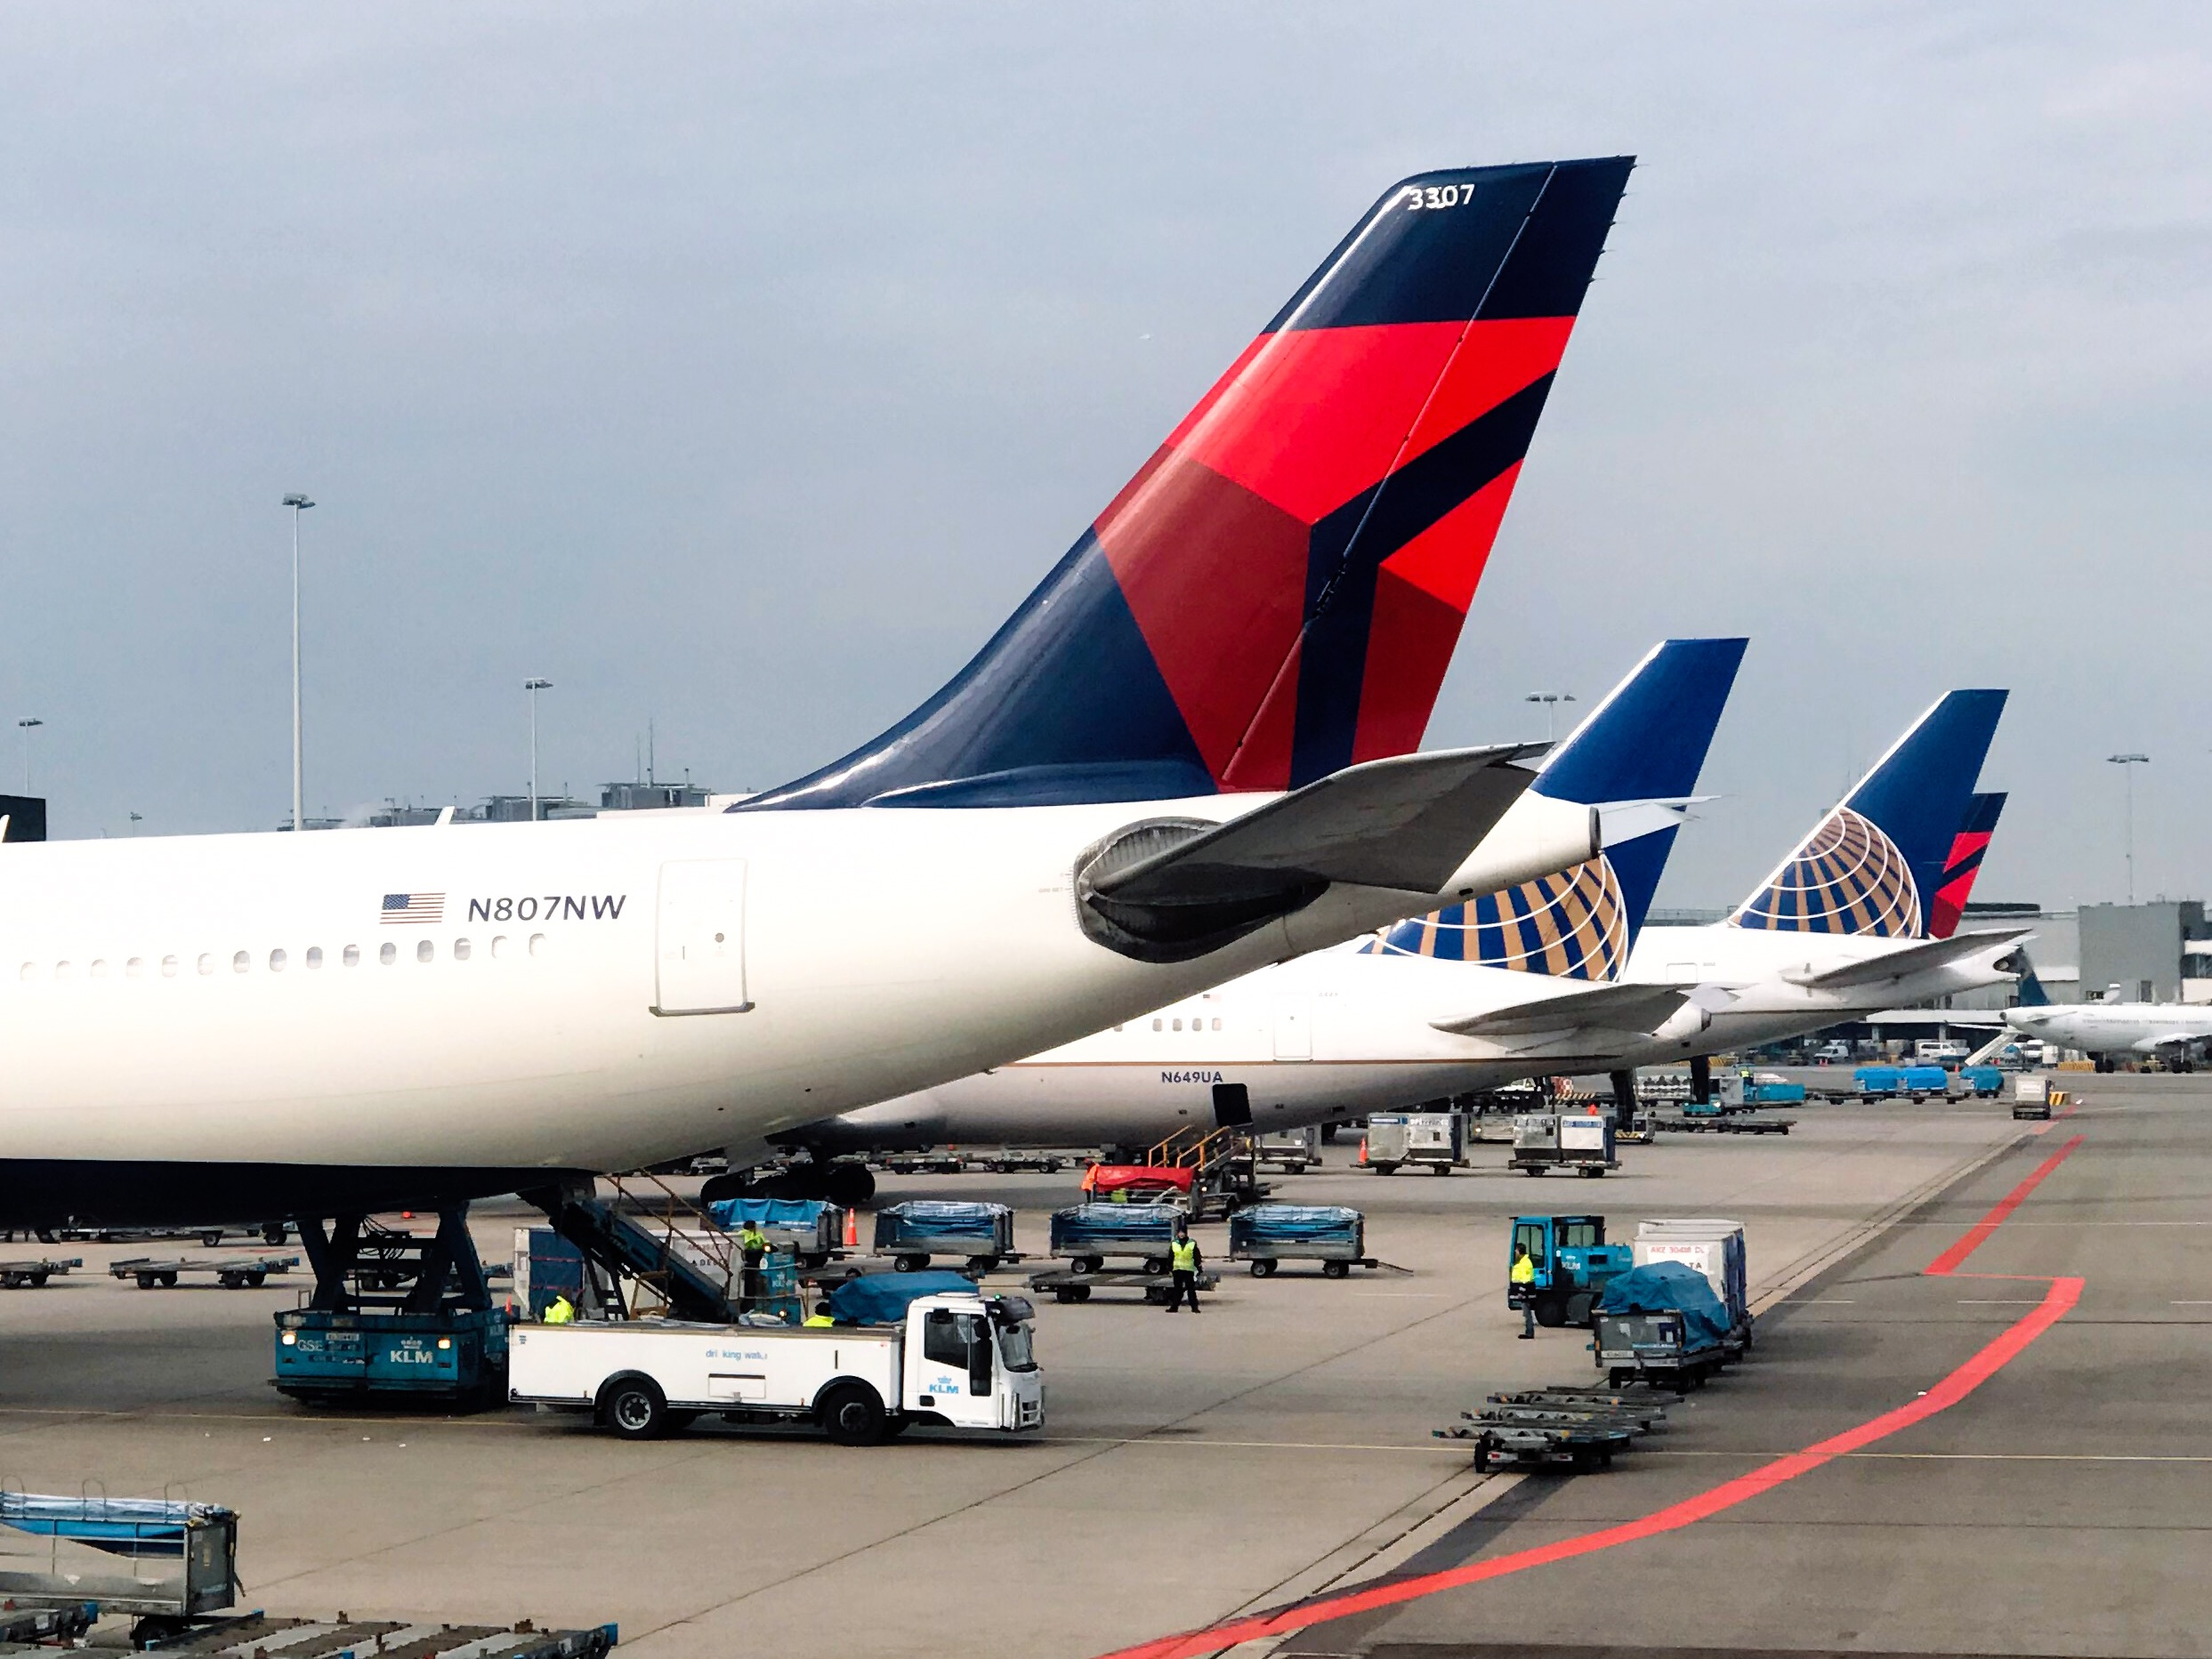 Delta received most of the A330s after the merger with Northwest.